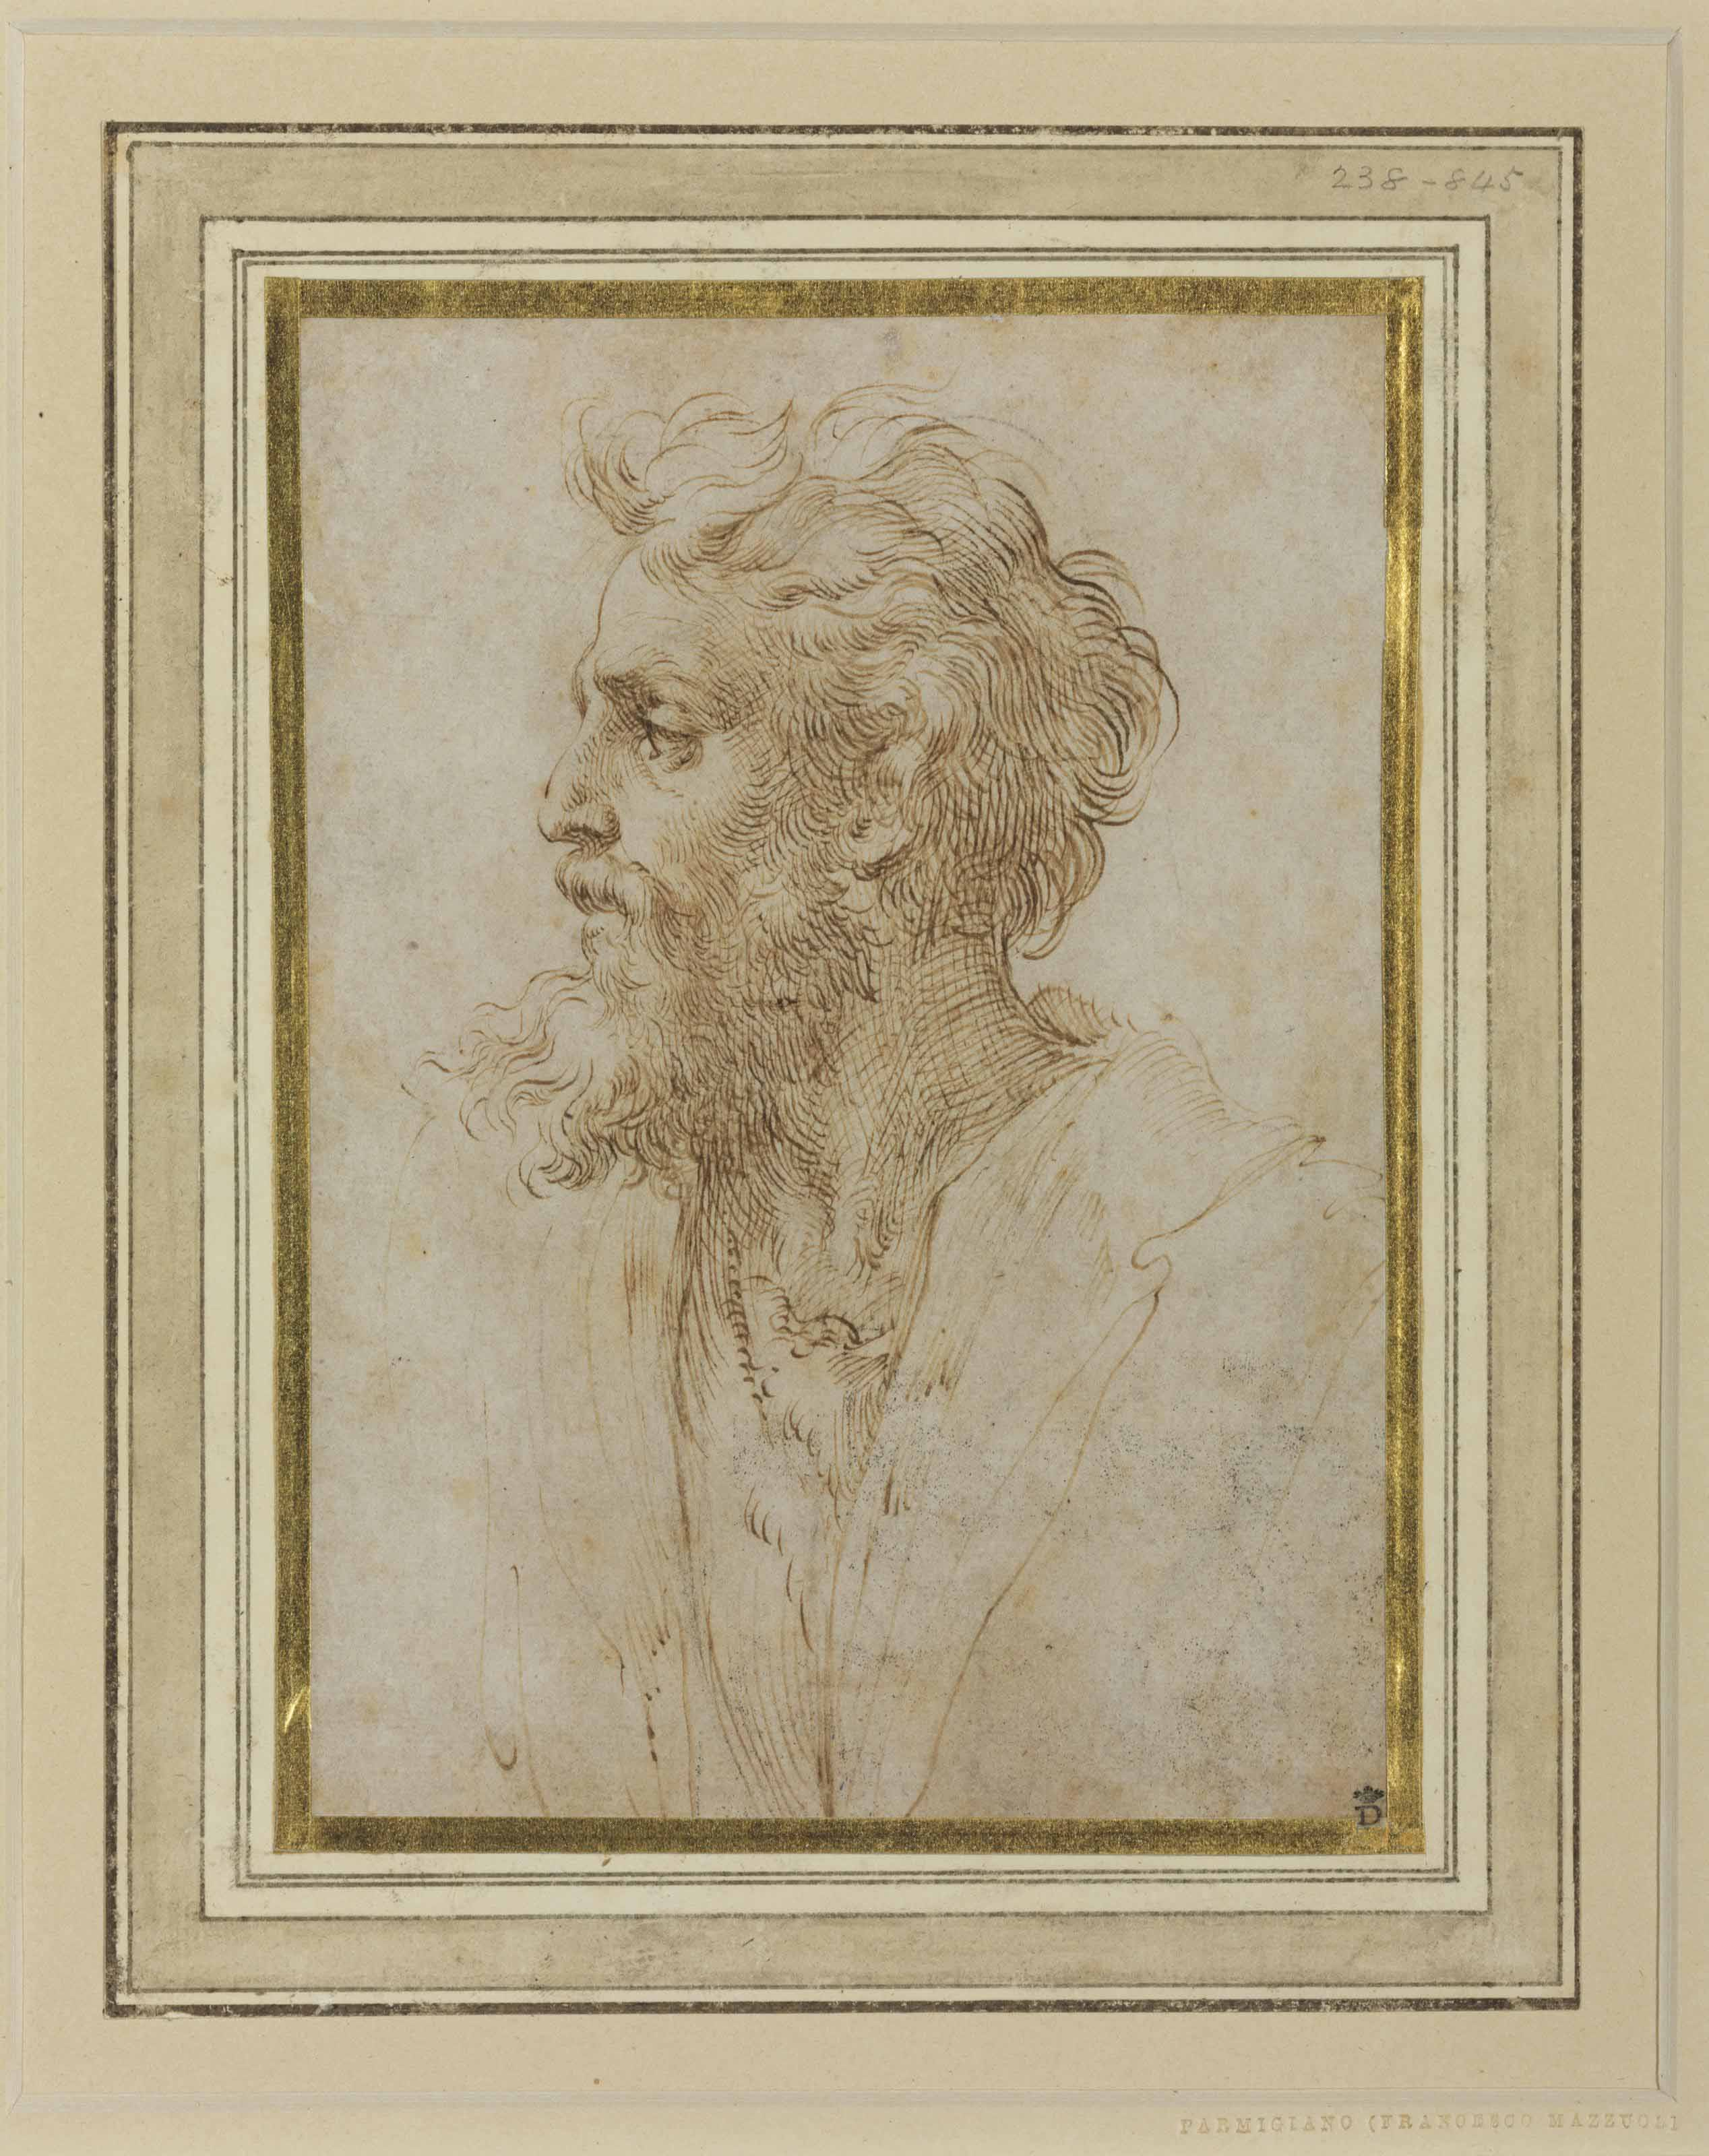 Head of a bearded man in profile facing left, possibly a self-portrait